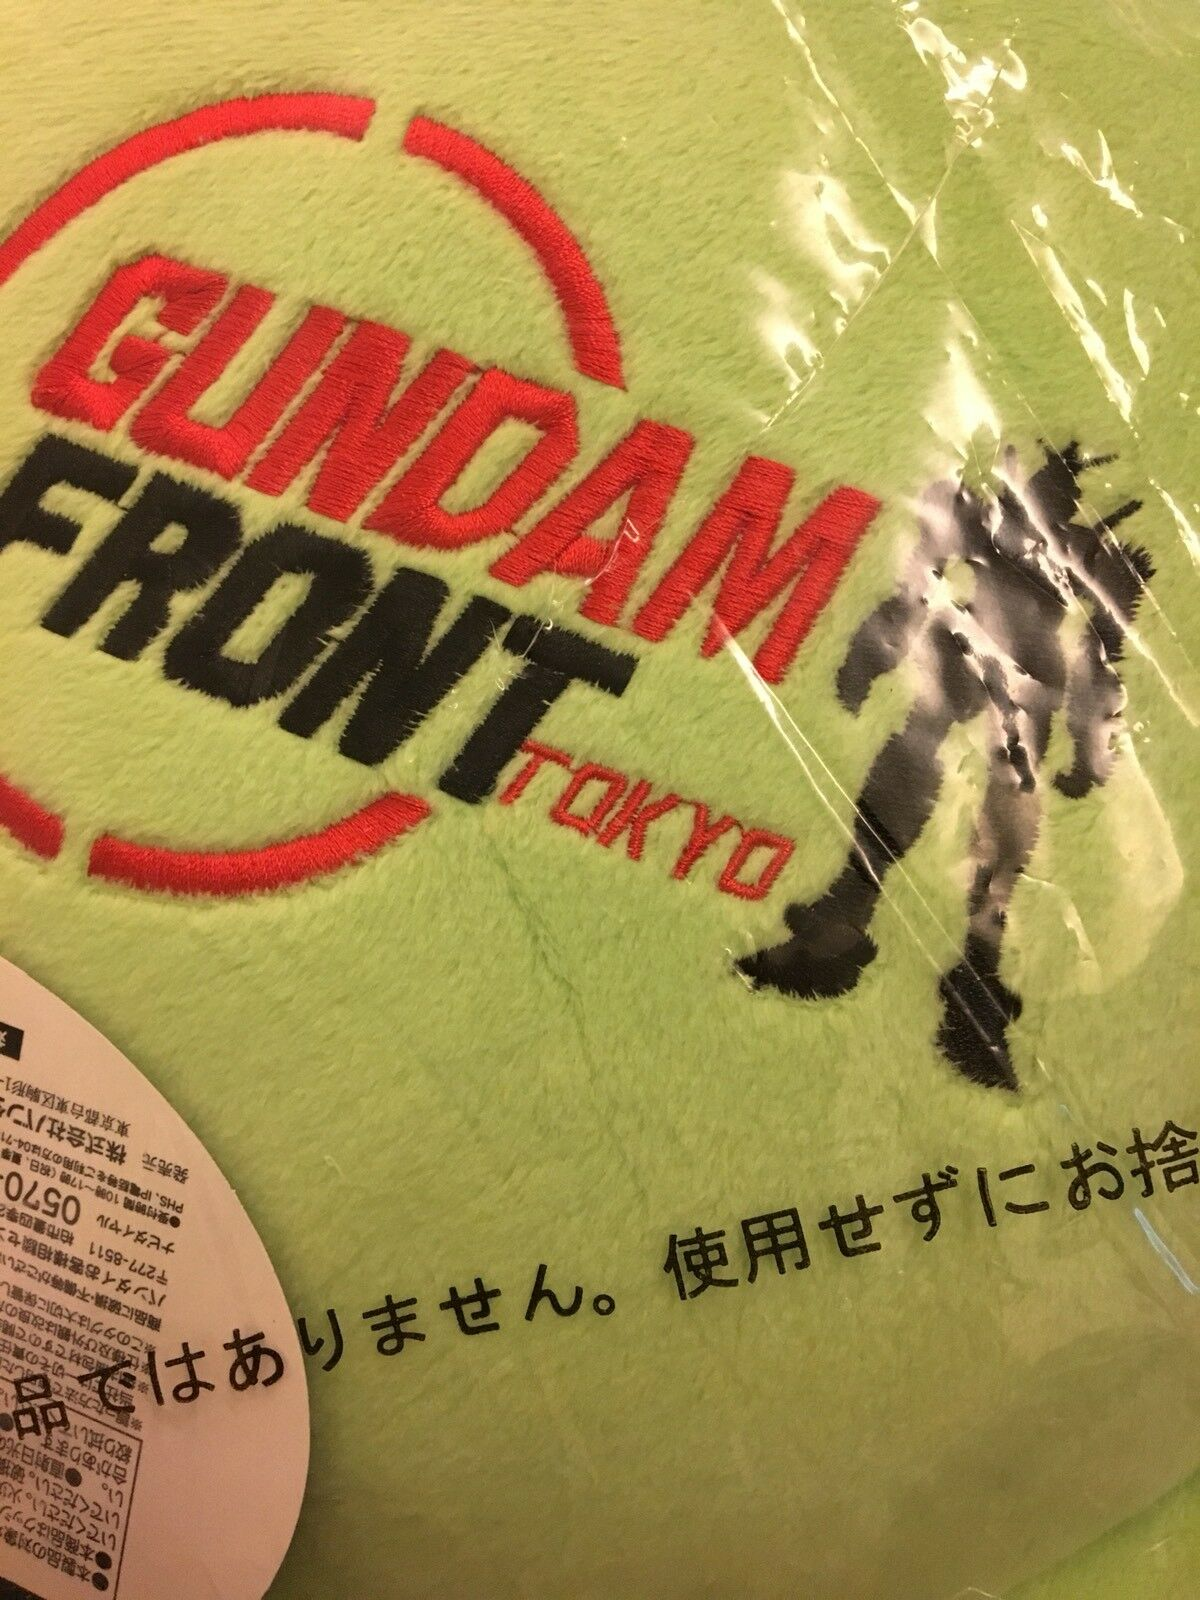 GUNDAM Cushion - Deadstock - Sold Out Out Out Worldwide  Collectors Item fb3932